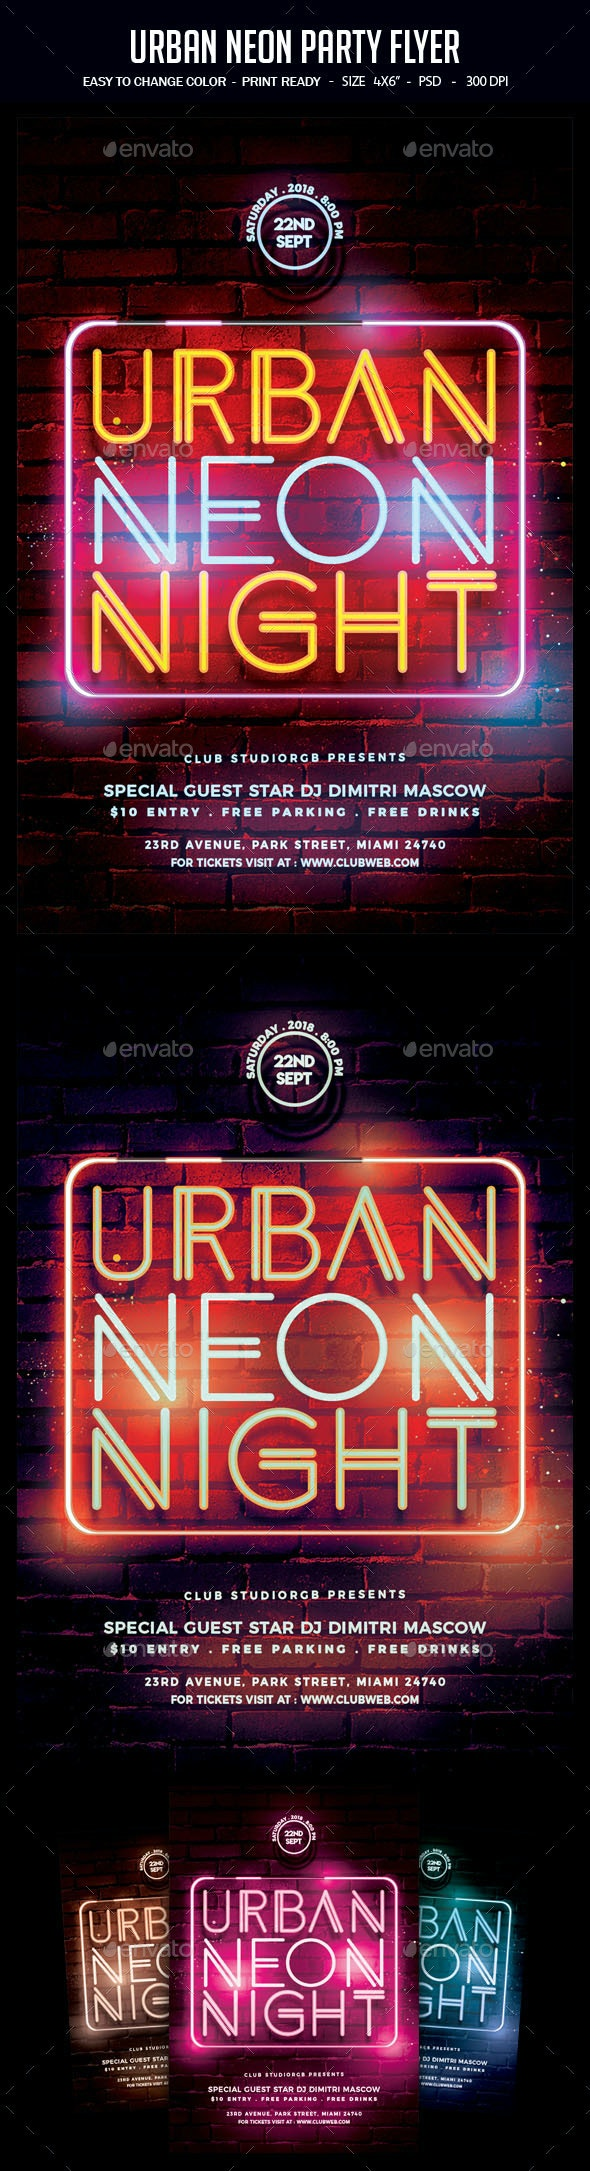 Urban Neon Party Flyer - Clubs & Parties Events